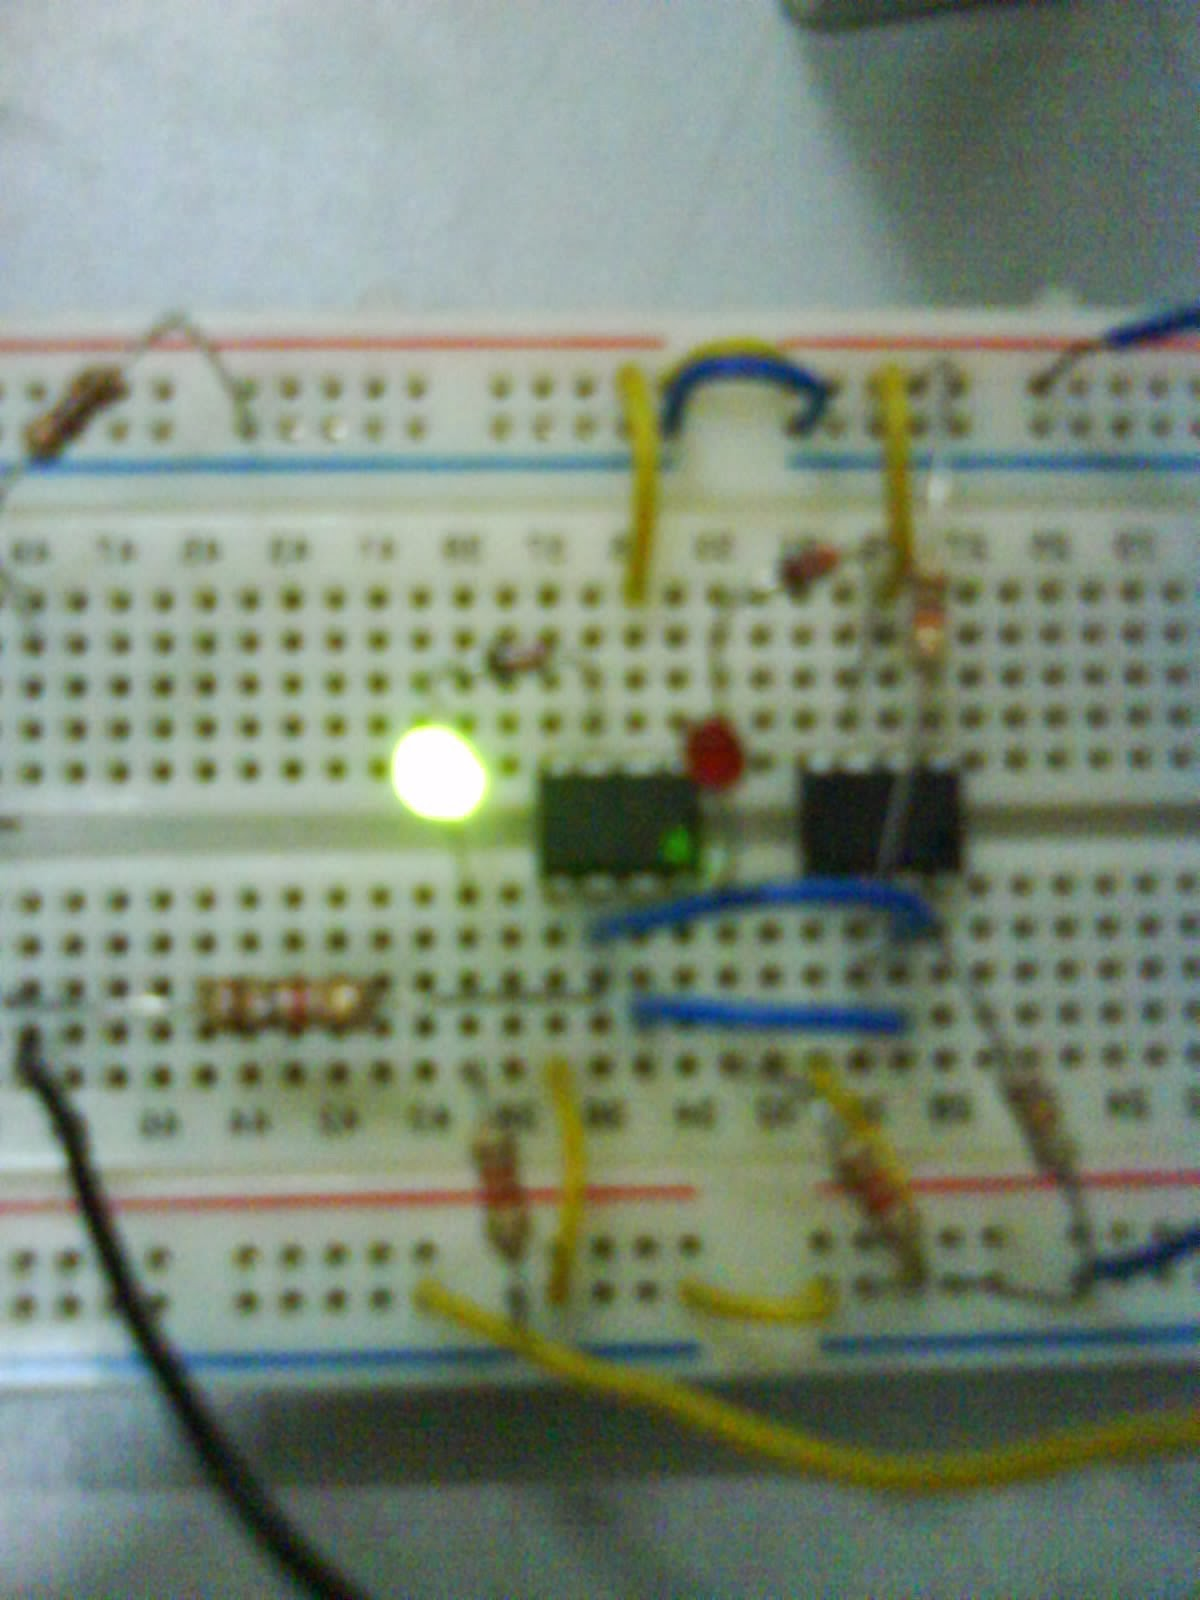 Fast Charging Portable Power Supply Using Super Capacitor As Charge Battery Tester Circuit Breadboard Schematic Figure Above Shows Process Take Place With Red Led Turned On And Green When The Completed Respectively